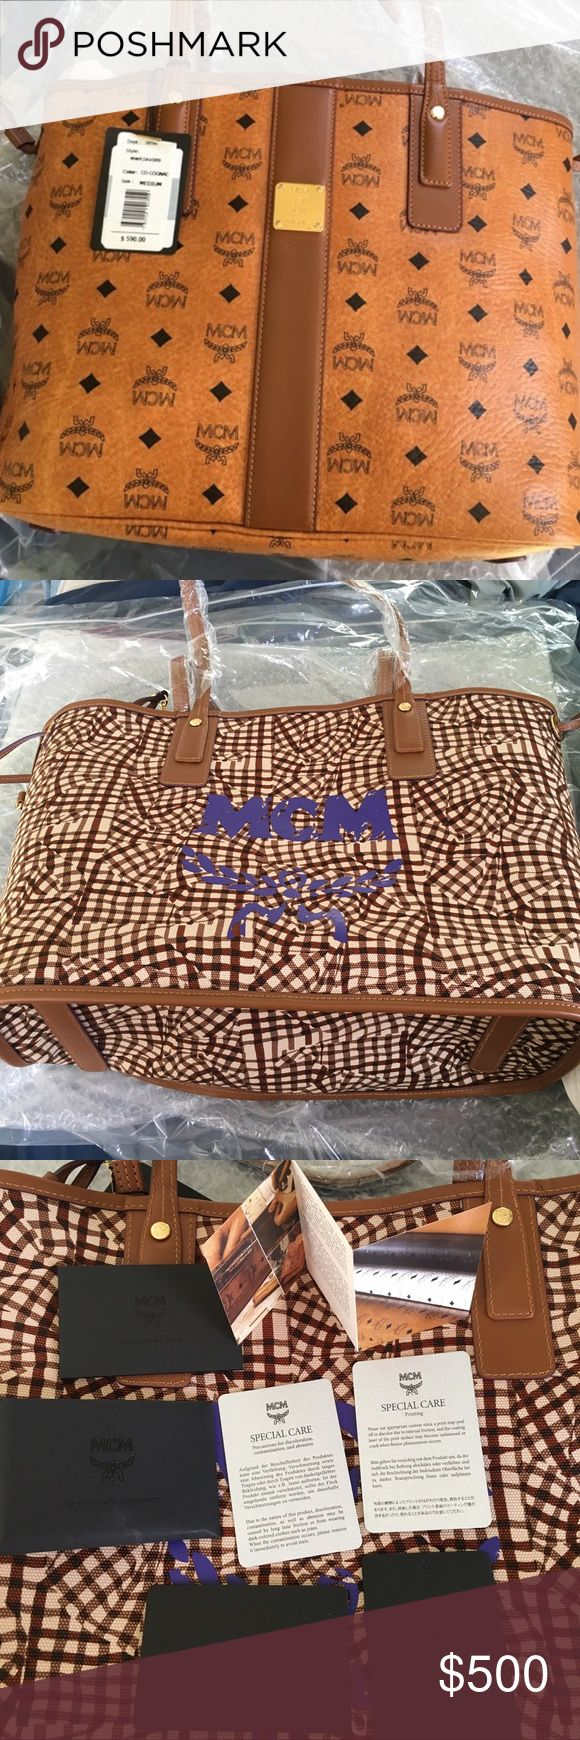 Mcm medium tote bag Medium tote bag never worn. Pouch and dust bag included with full asking price only!! MCM Bags Totes